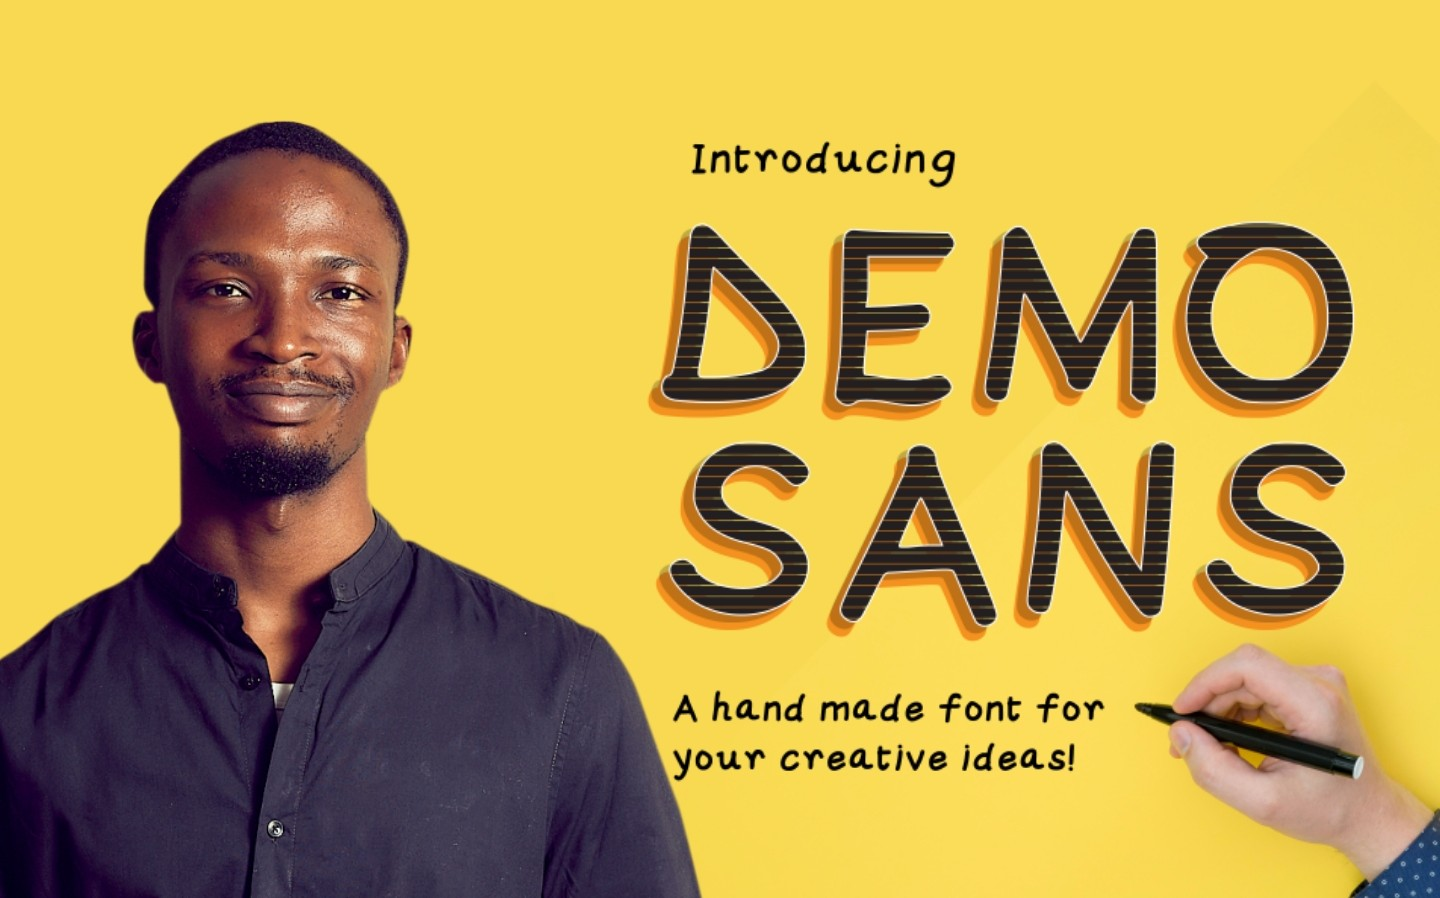 Tech News: Ademola Badejo Launches Demo Sans Font for Graphic Designs